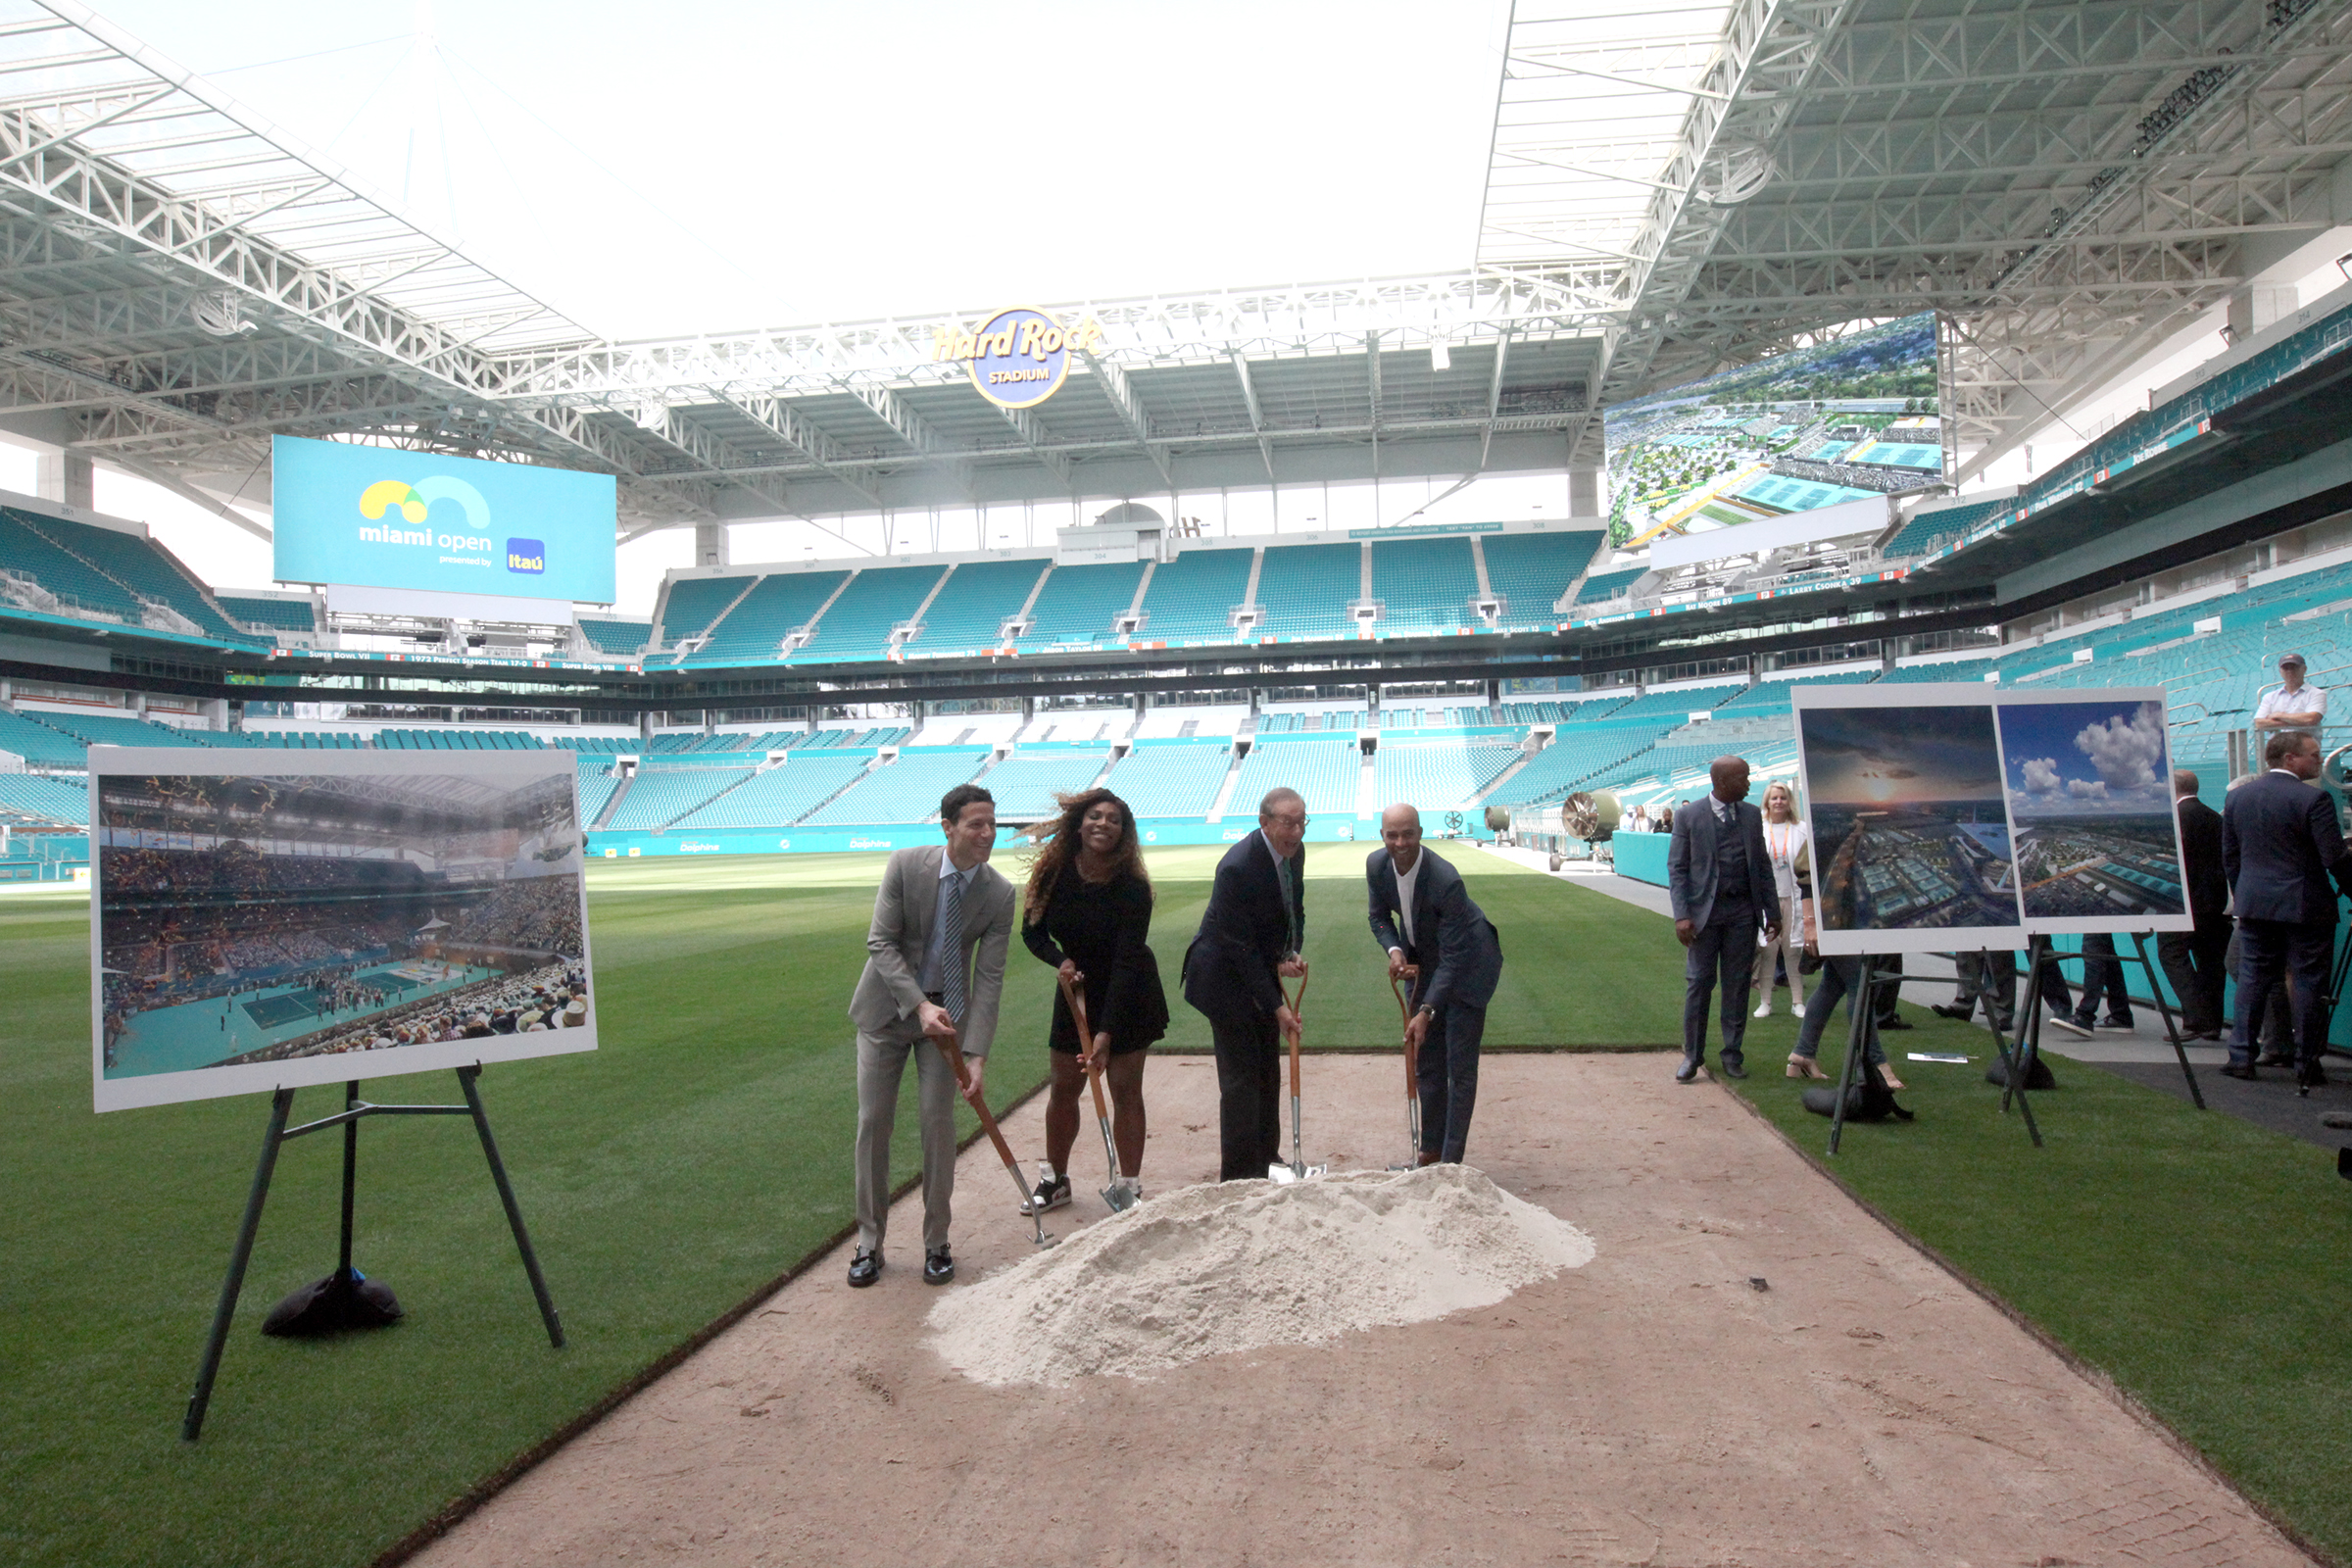 miami open ready for shift to hard rock stadium • the